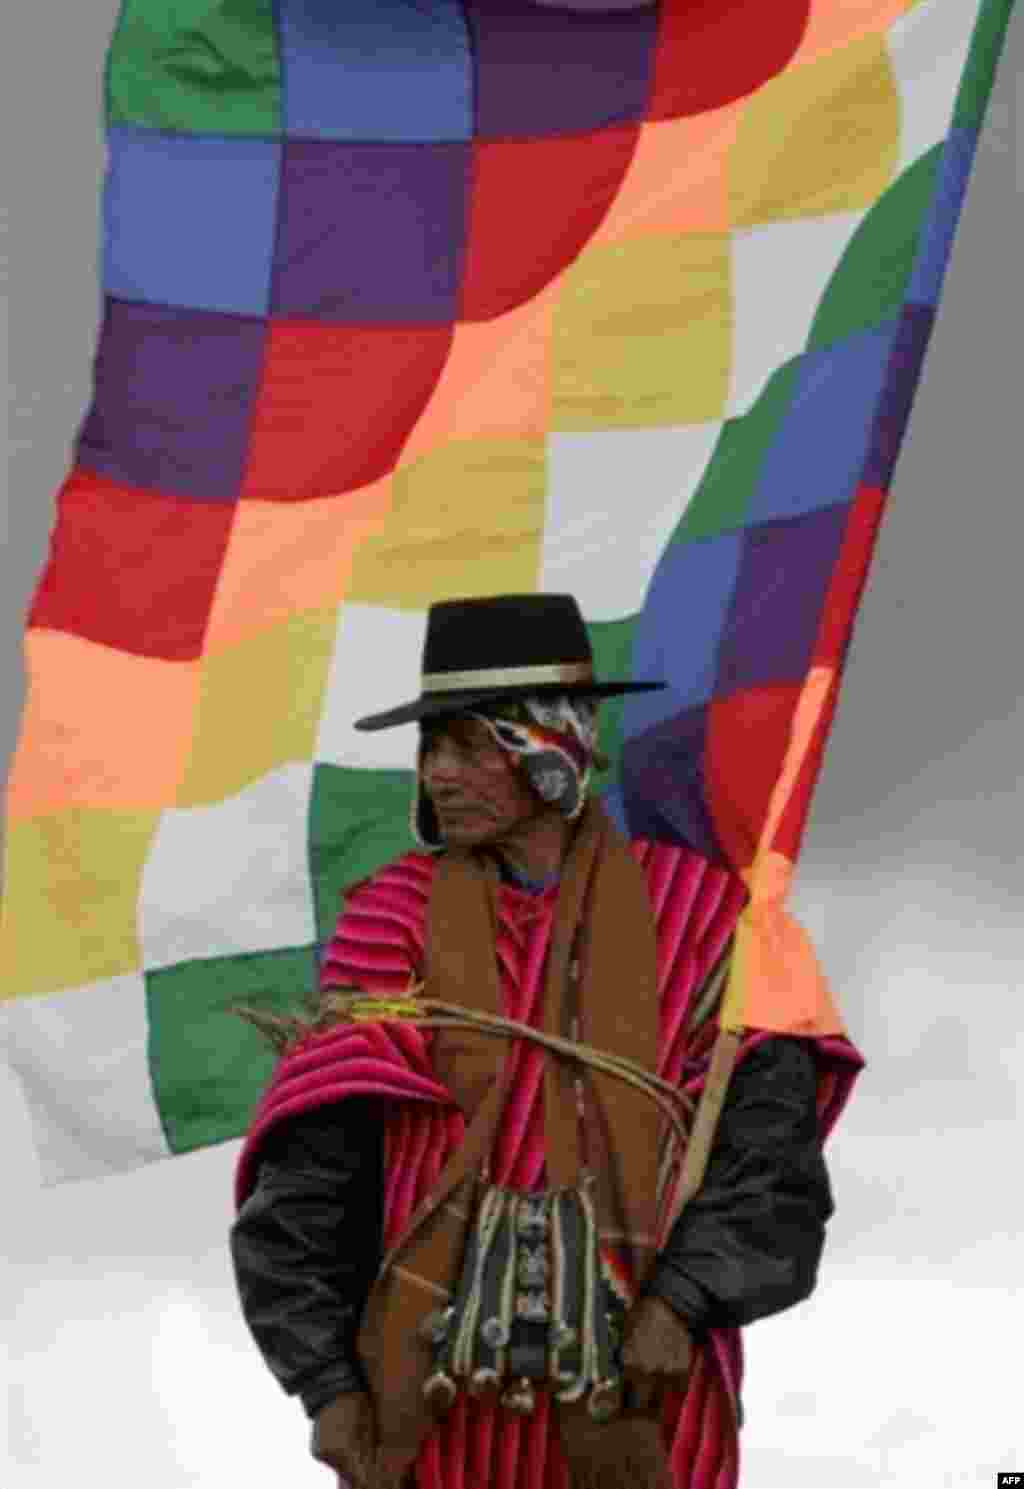 A native Bolivian holds a flag symbolizing the old Inca empire at an Indian ceremony to induct Evo Morales as Bolivia's president in January (AFP) - A tidal wave of elections -- 12 in 13 months -- moved Latin American politics leftward and placed a series of colorful, unusual, controversial, and sometimes familiar faces in presidential palaces. While some -- chiefly Venezuela's Hugo Chavez -- struck an anti-U.S. note, increased social spending and deeper regional integration were more important issues for most.